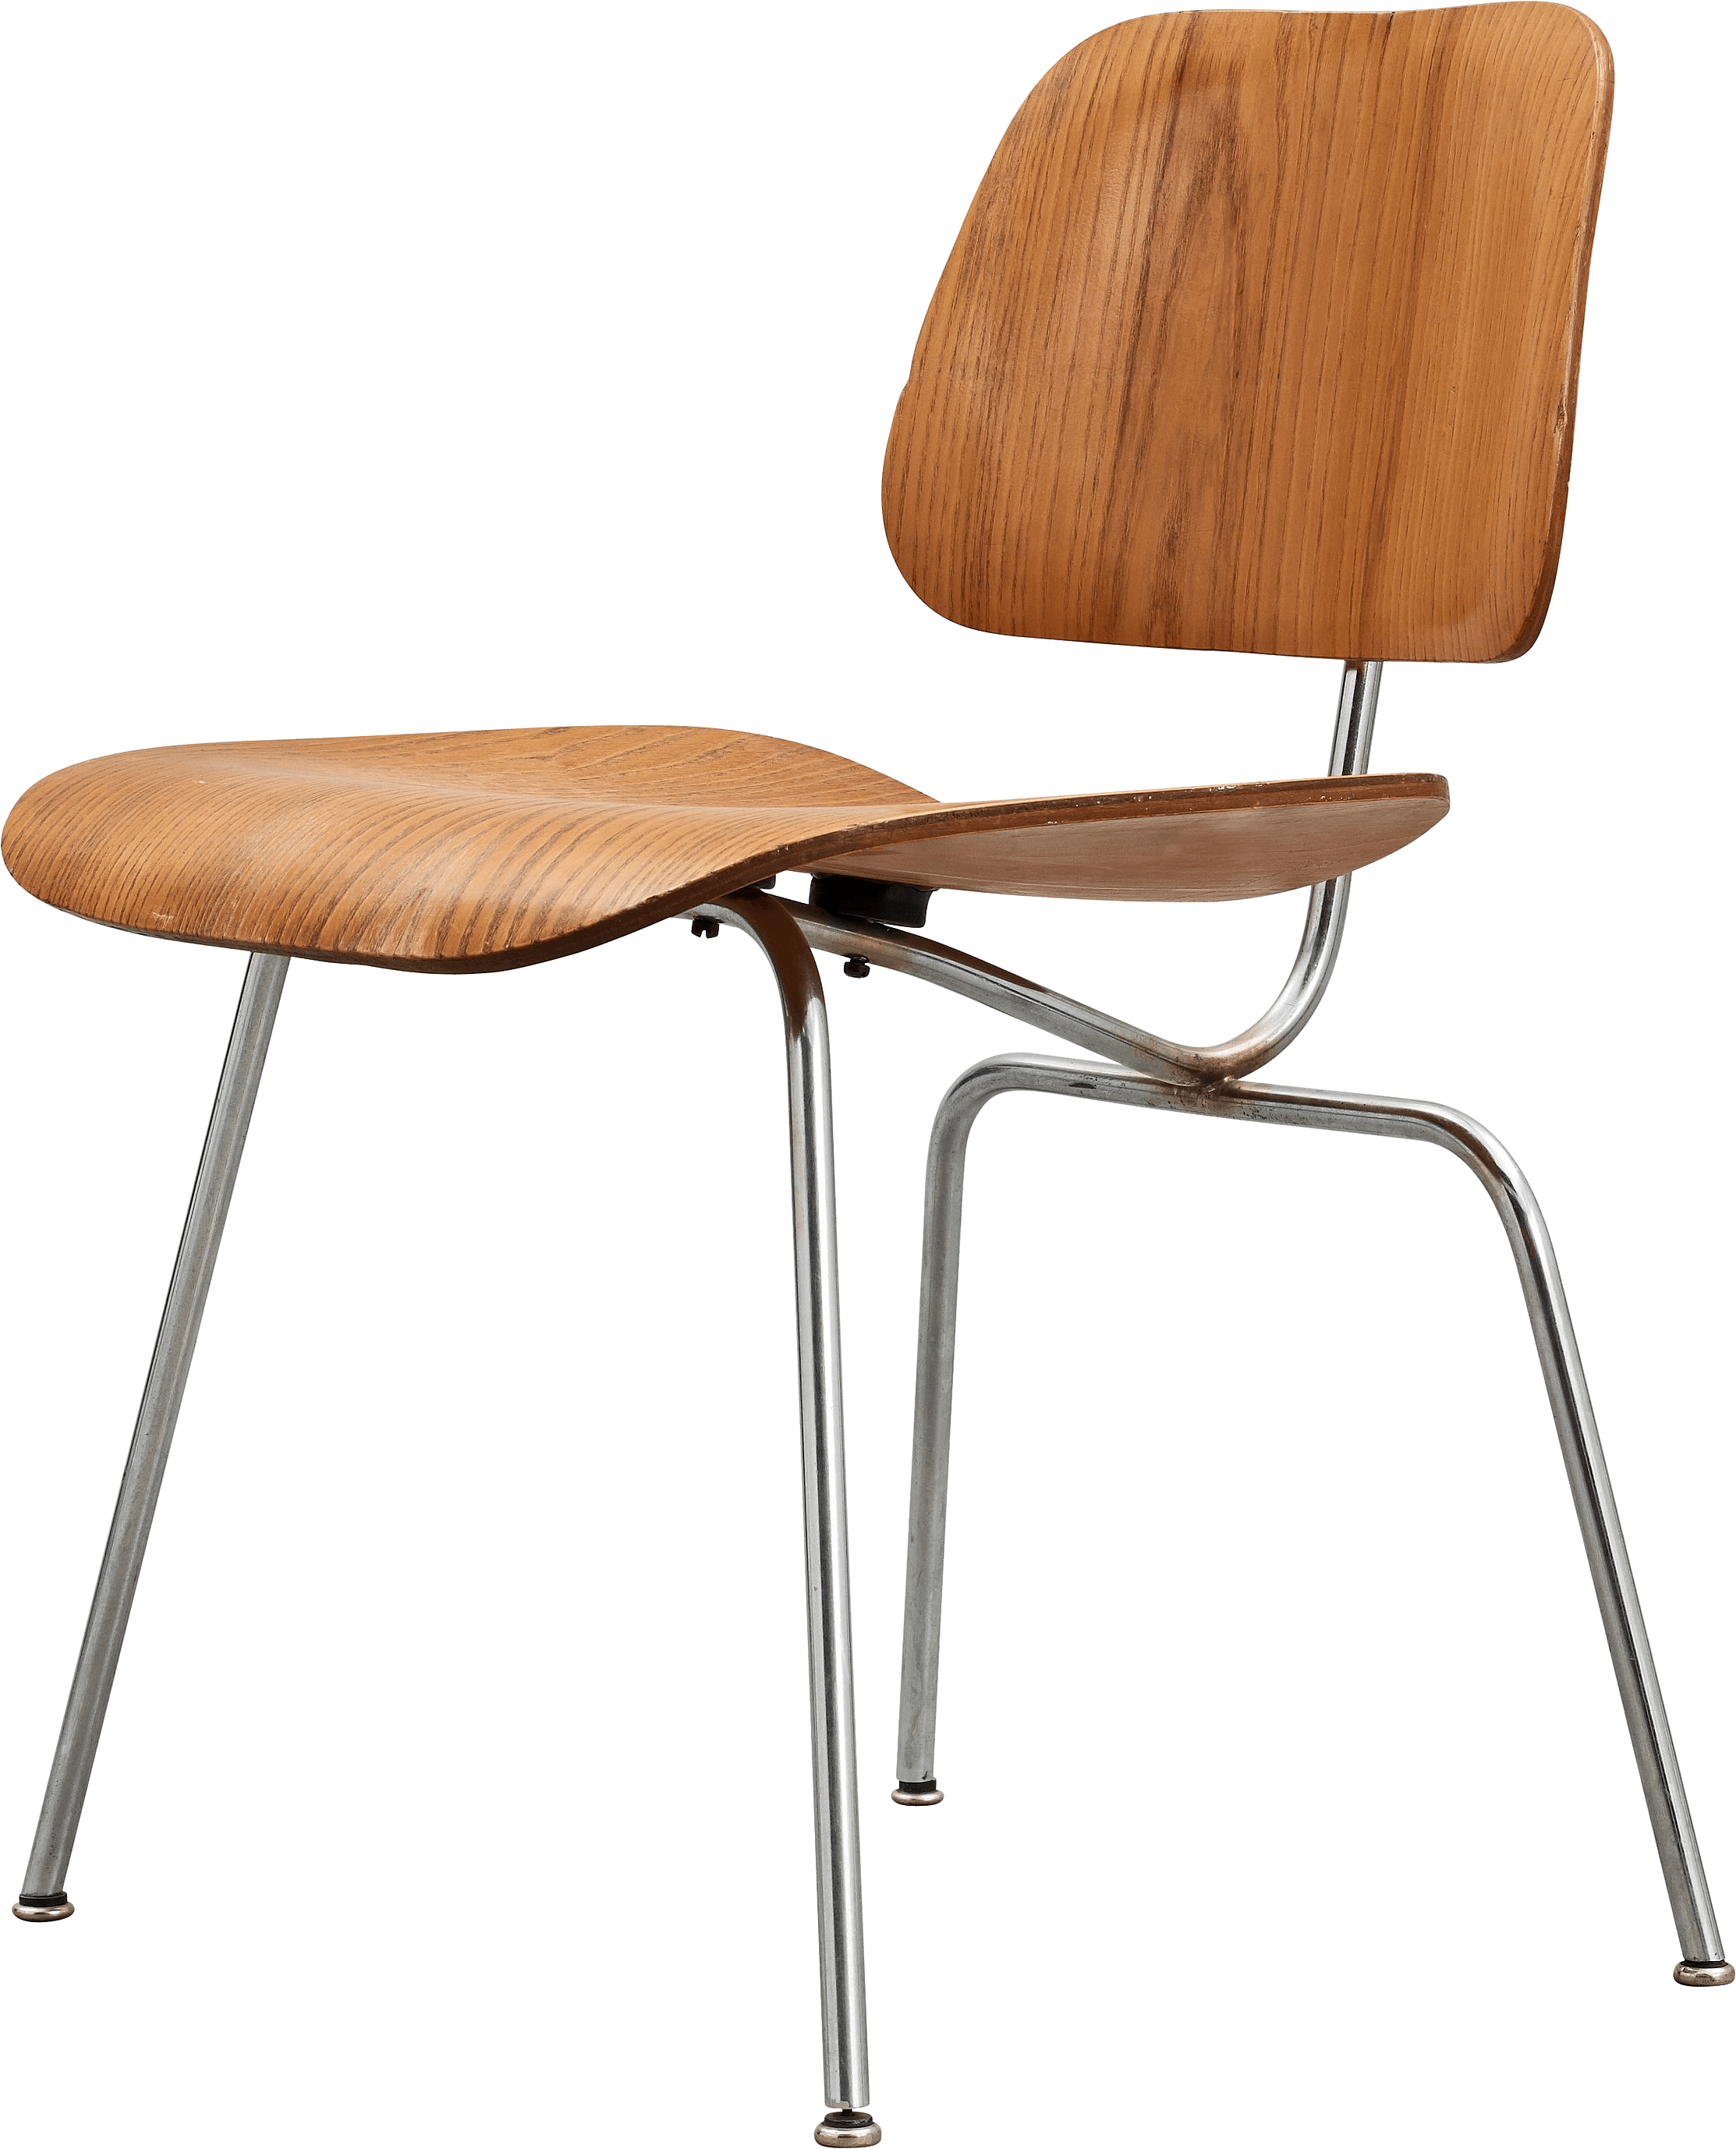 Chair PNG Photos SVG Clip arts